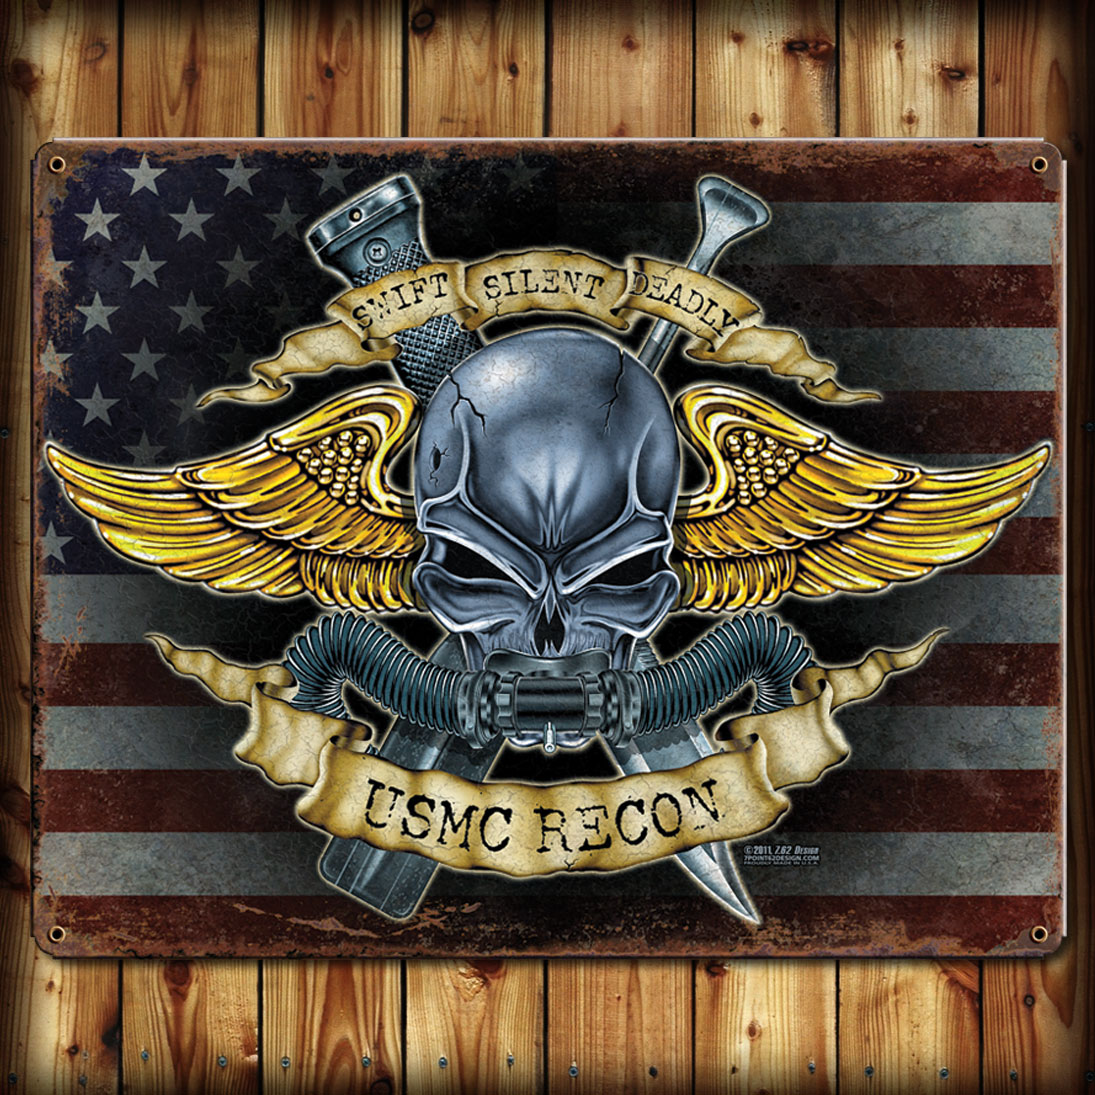 USMC Recon wallpaper USMC Recon hd wallpaper background desktop 1095x1095